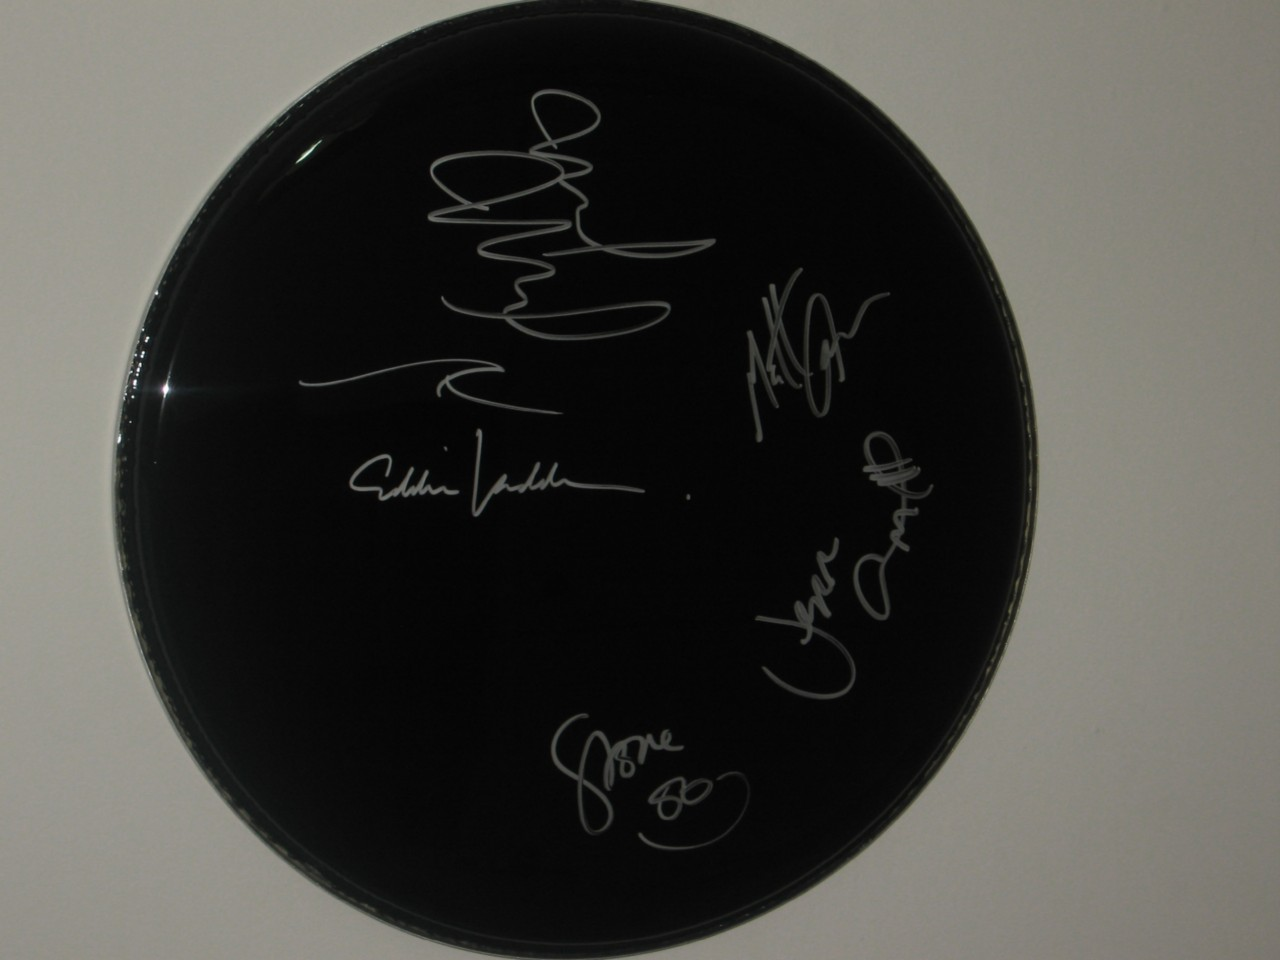 PEARL-JAM-FULLY-HAND-SIGNED-16-INCH-DRUMHEAD-MINT-CONDITION